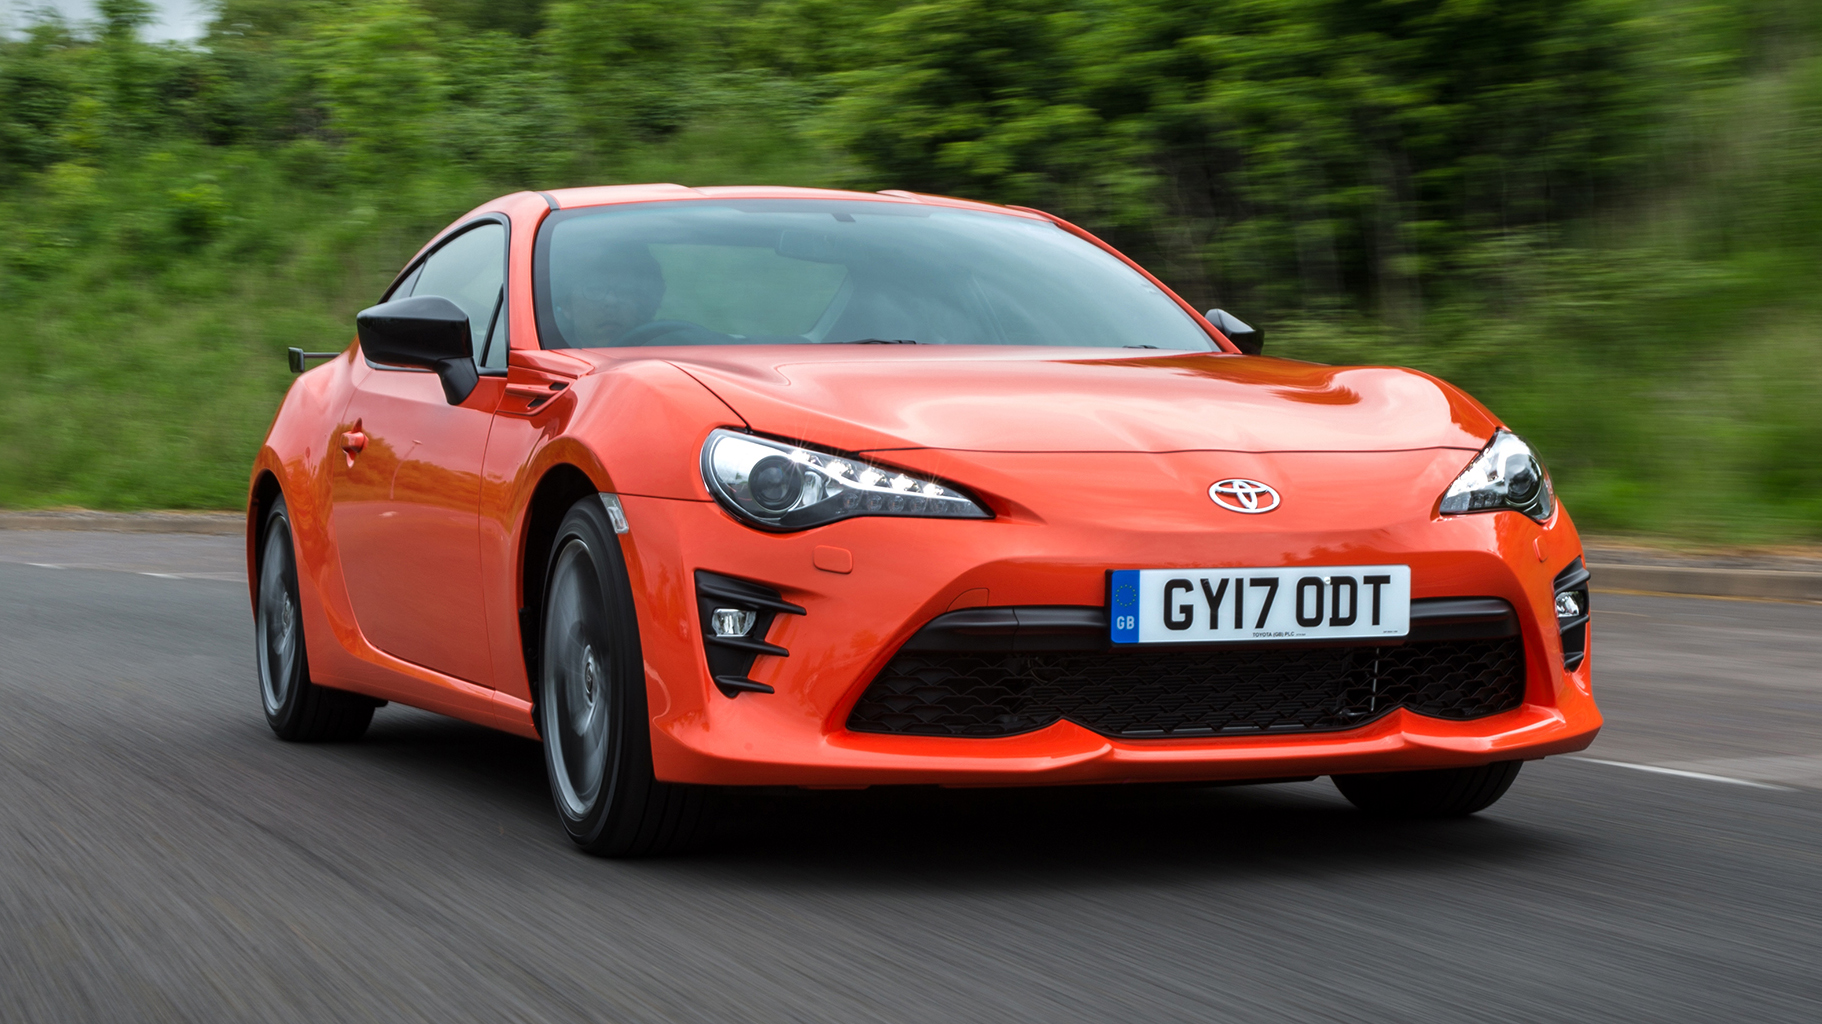 Toyota GT86 Orange Edition front